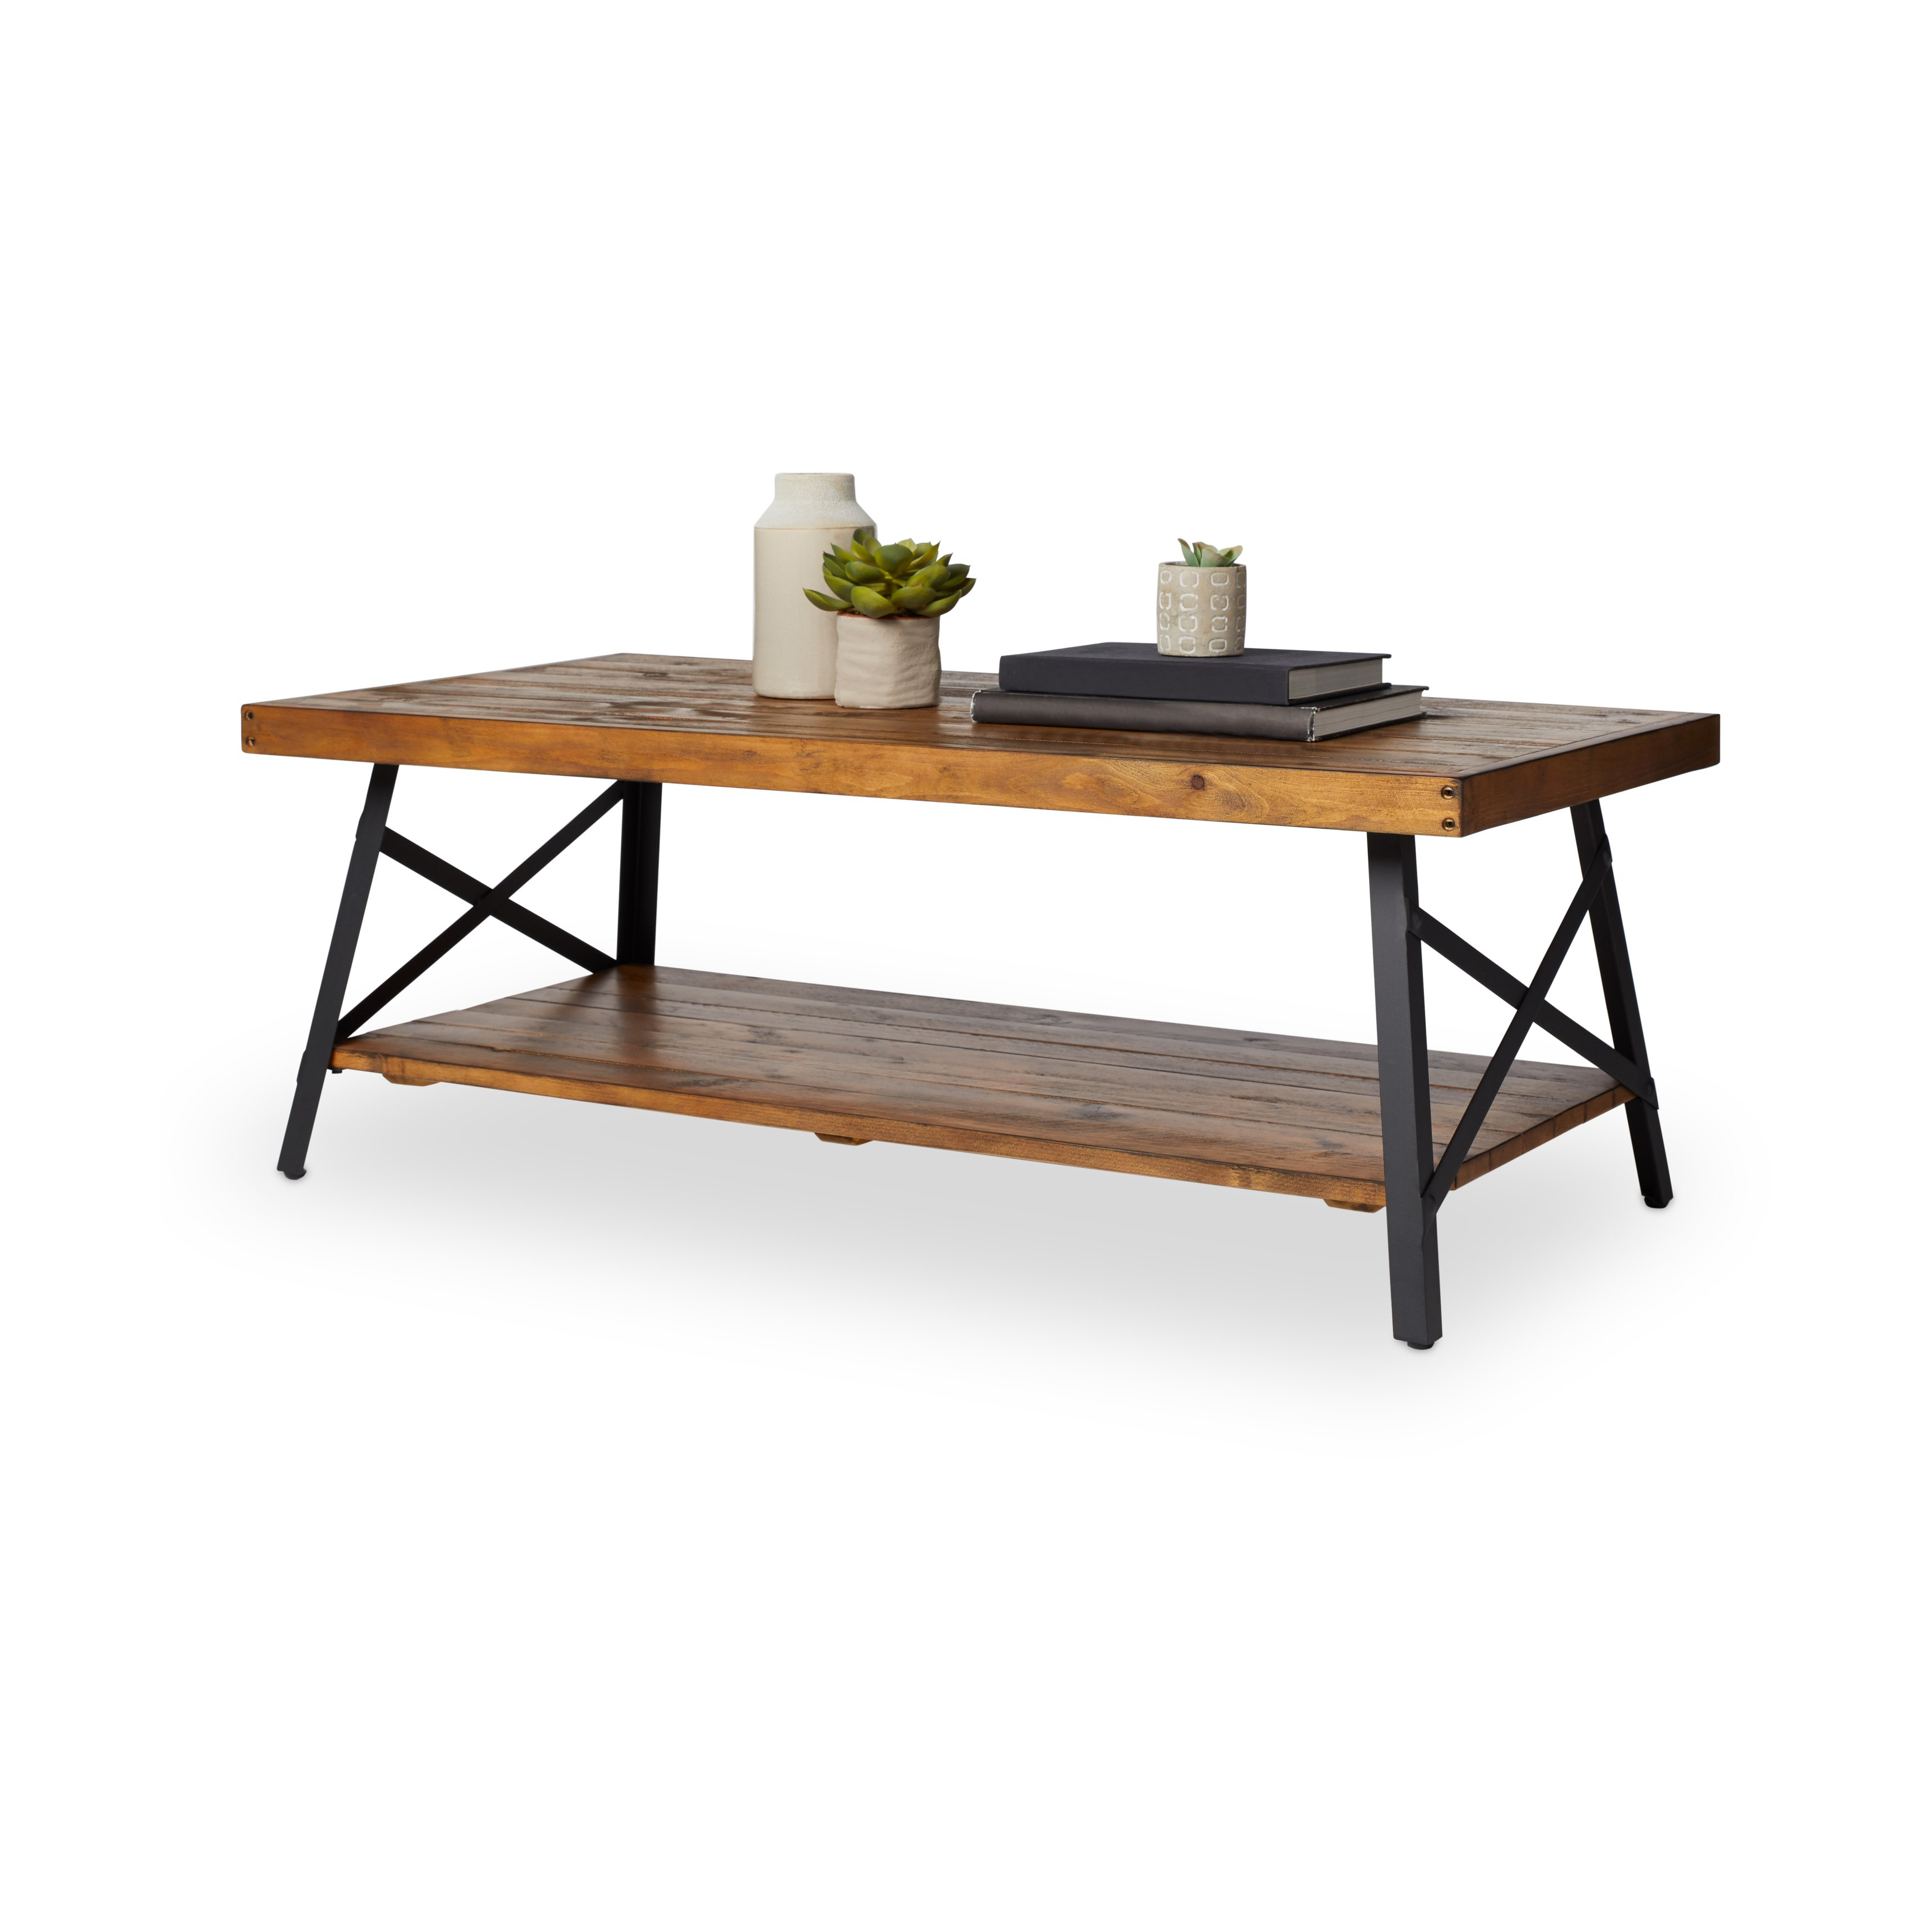 Modern Rustic Coffee Tables With Preferred Shop Carbon Loft Oliver Rustic Reclaimed Wood Coffee Table – On Sale (View 11 of 20)